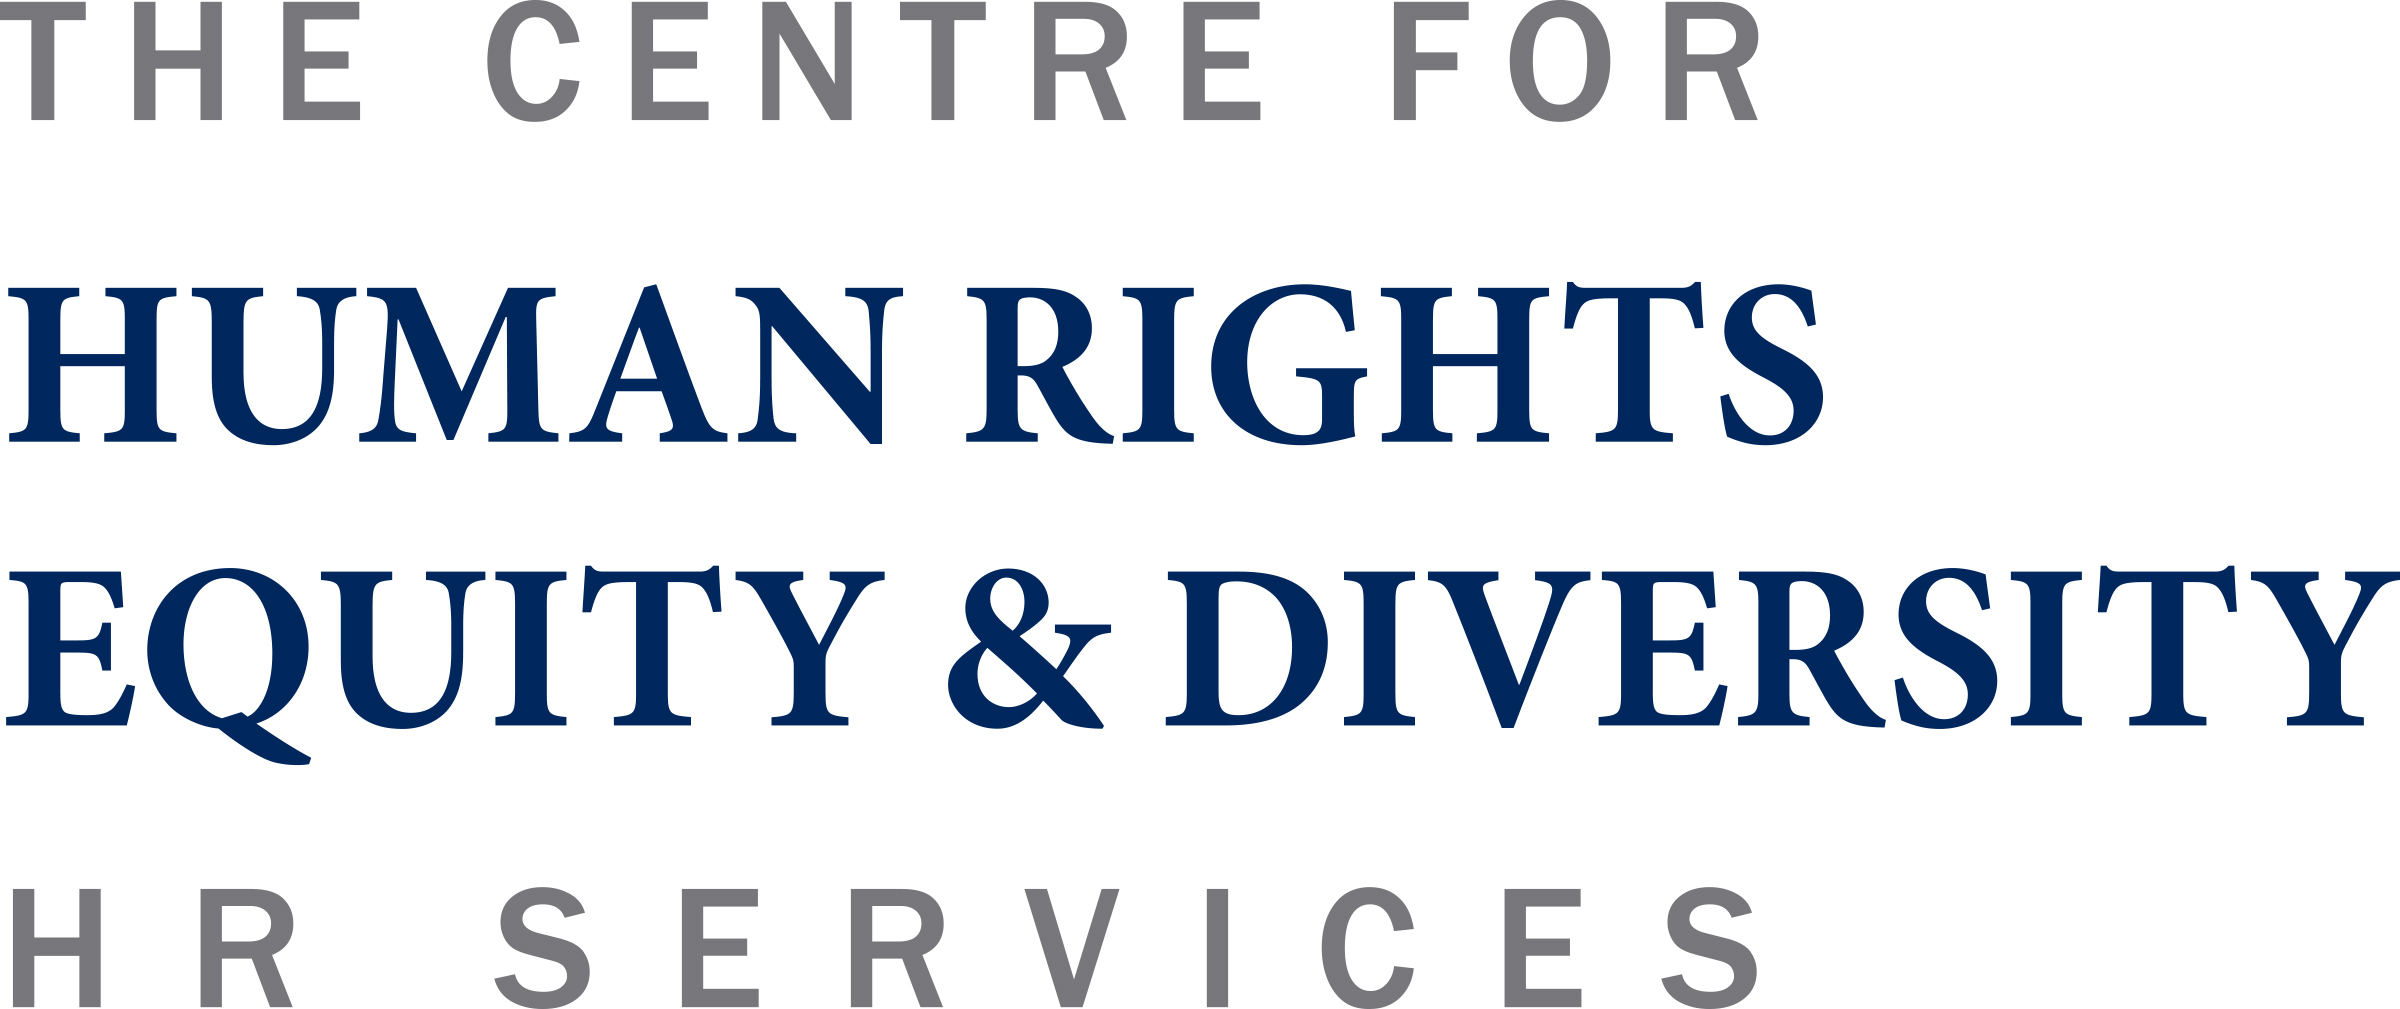 The Centre for Human Rights, Equity & Diversity